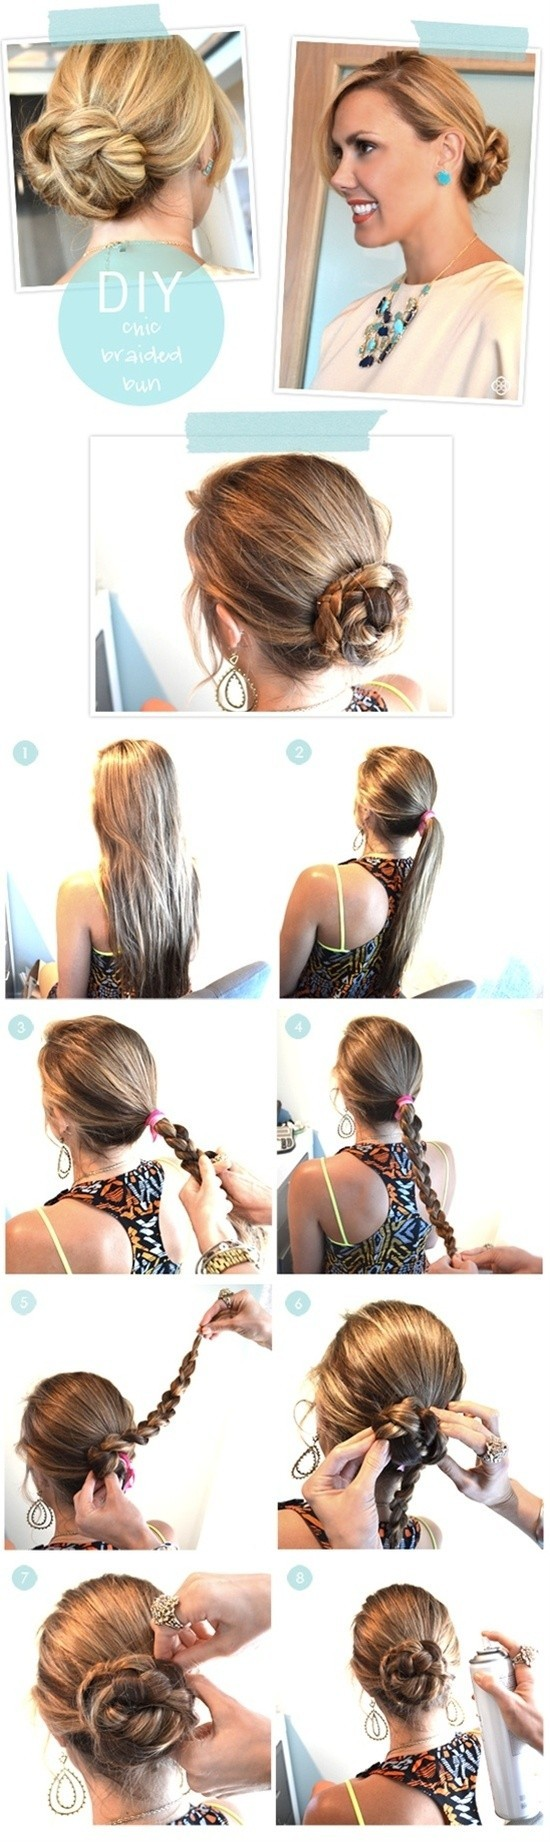 Step by step hairstyles for long hair long hairstyles ideas diy chic braided bun hair tutorial easy updos for long hair solutioingenieria Gallery